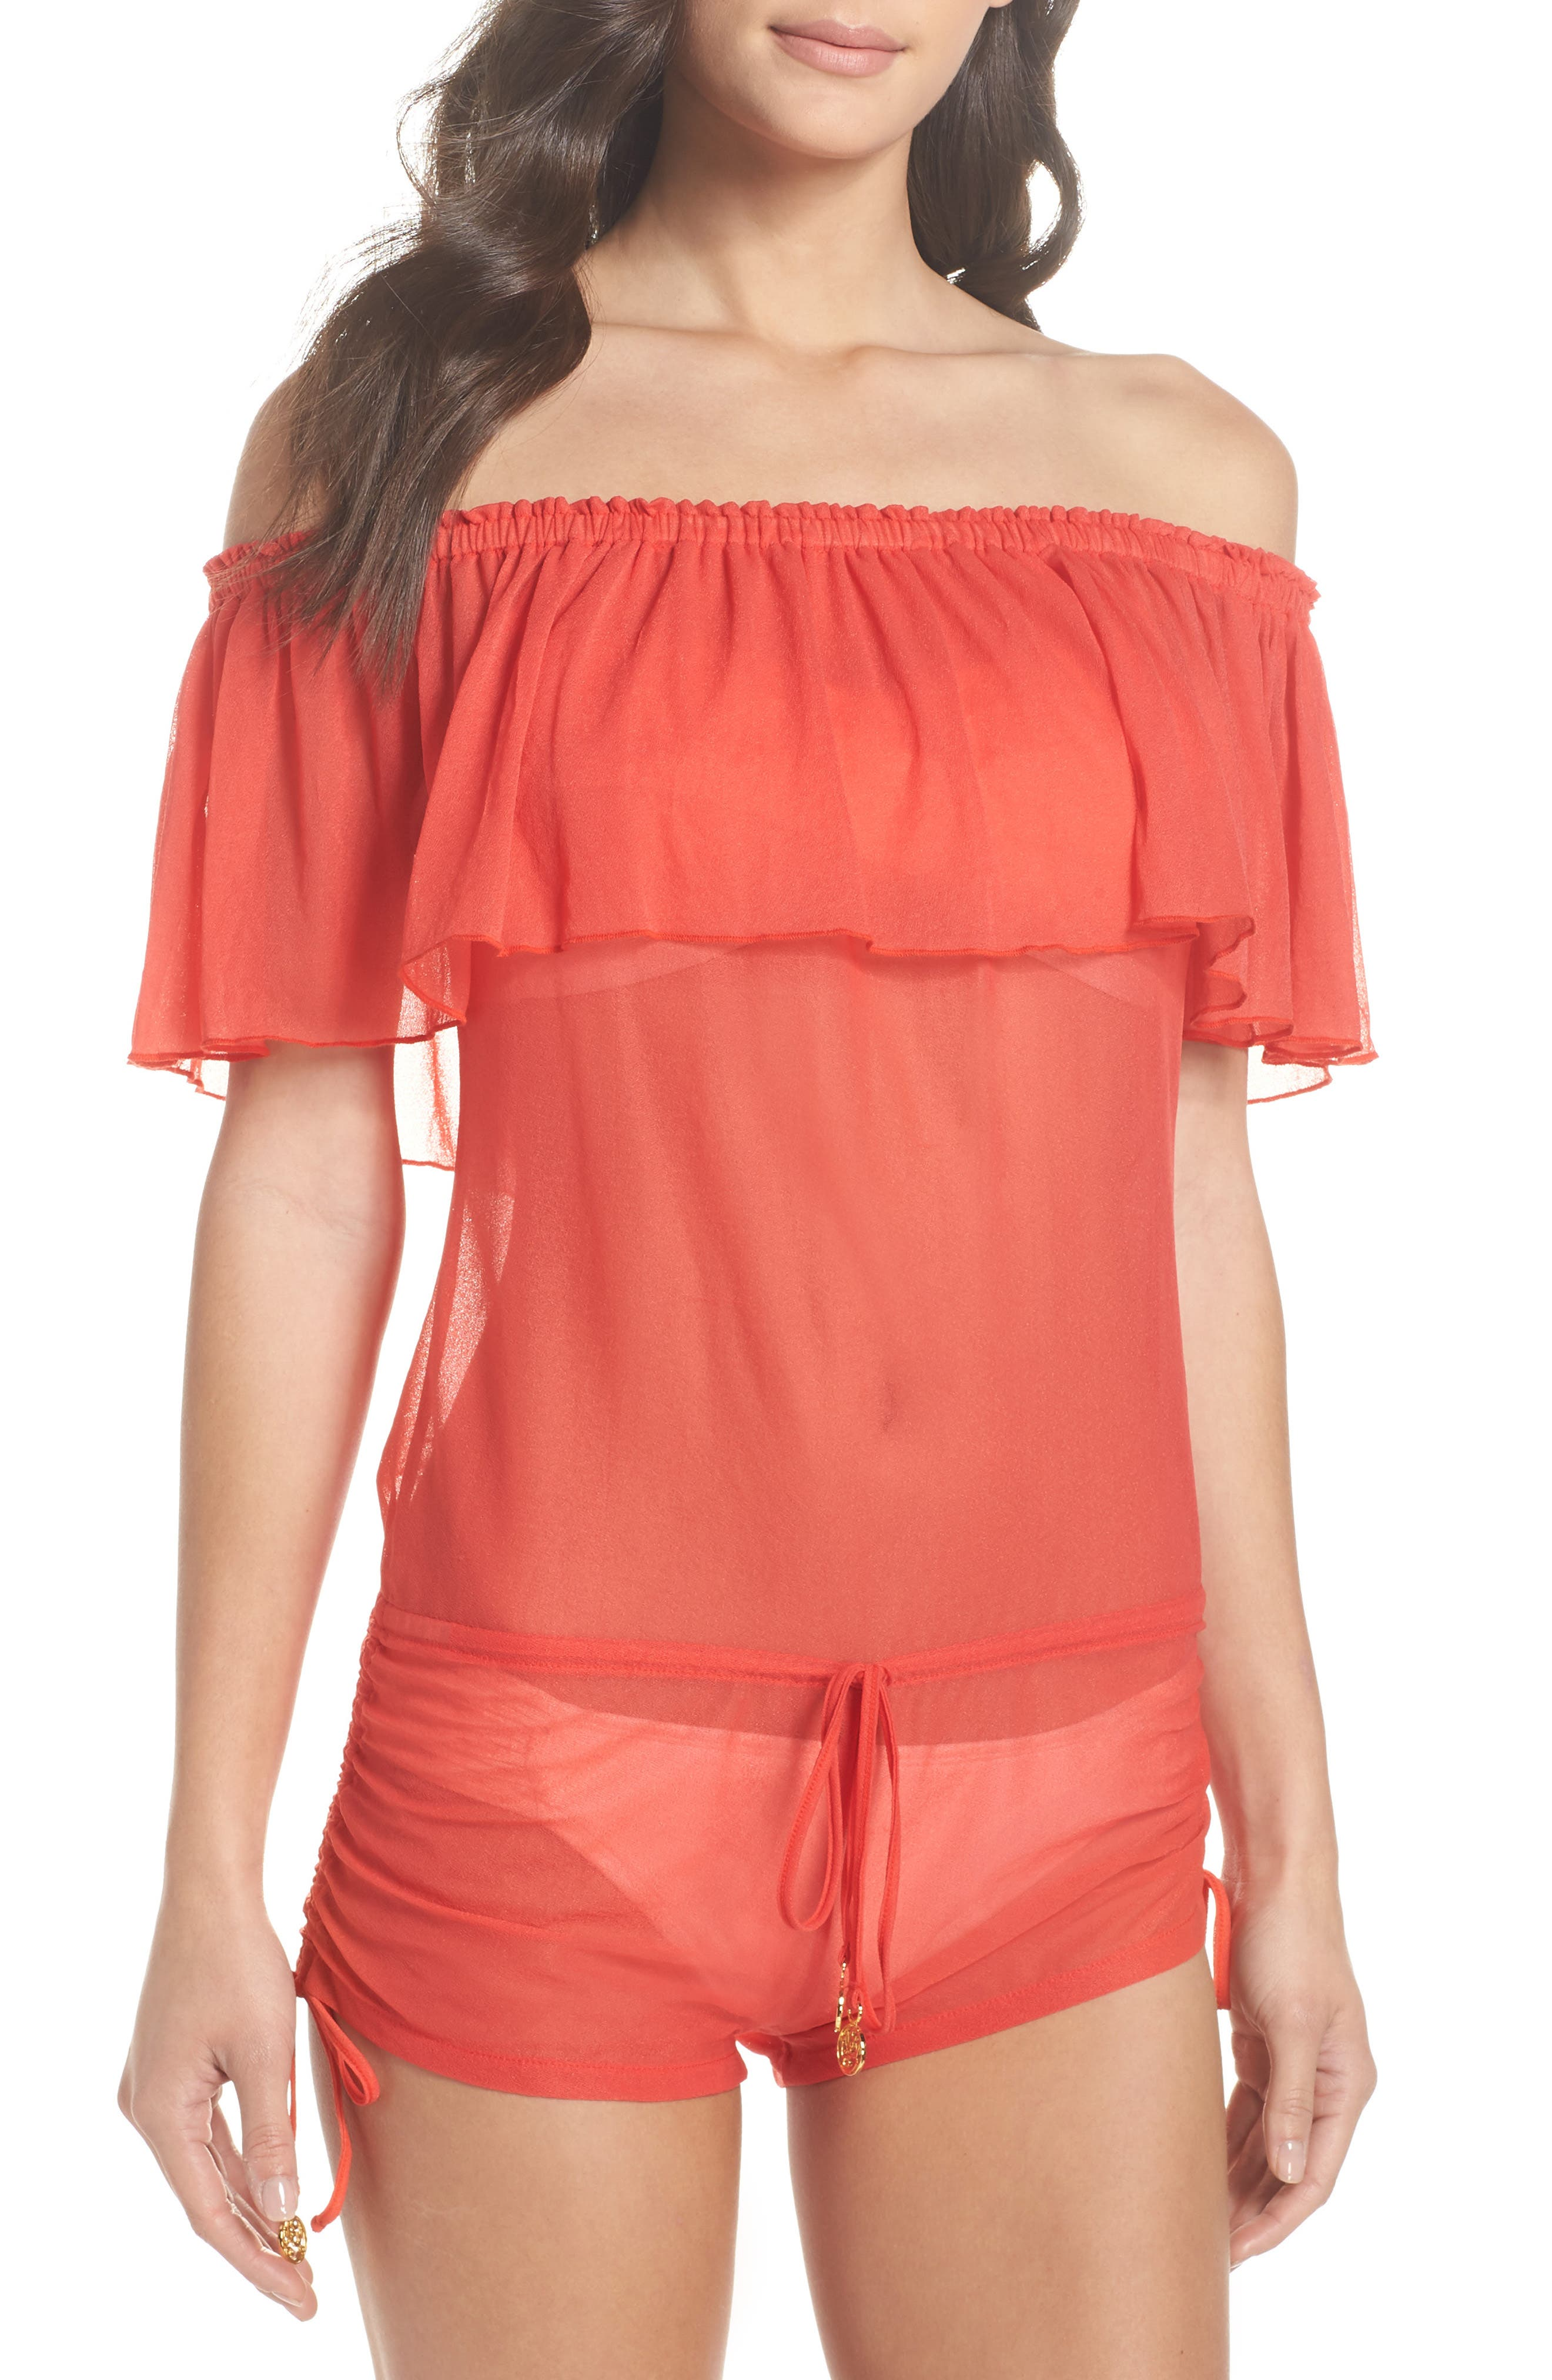 DRIFTER OFF THE SHOULDER COVER-UP ROMPER